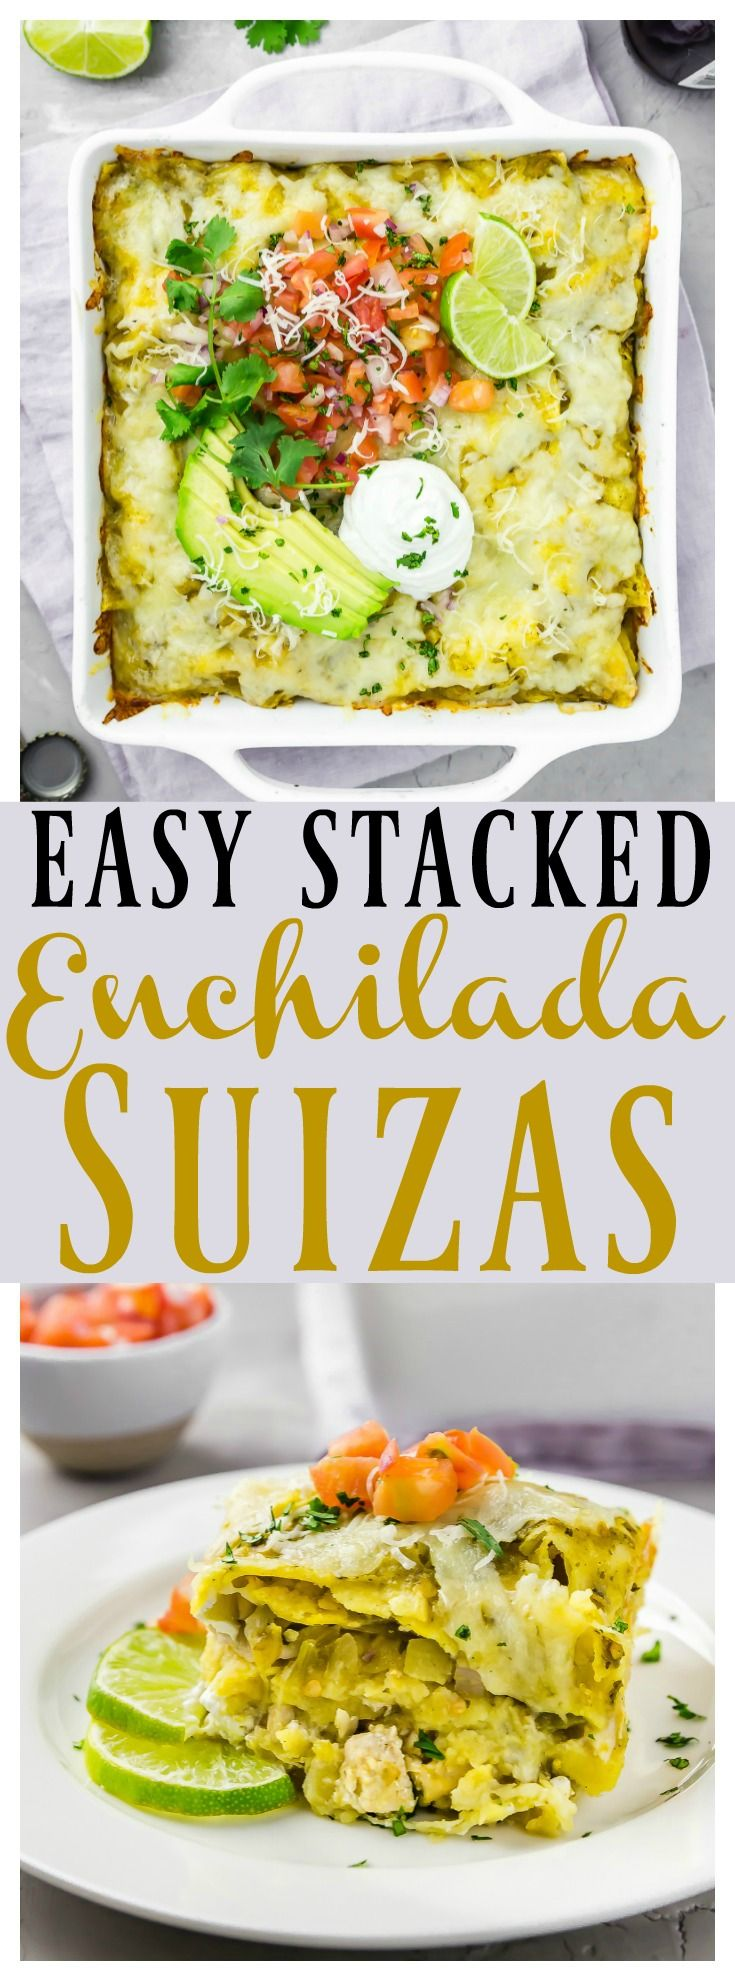 Easy Stacked Enchilada Suizas Bake [with recipe video] | This enchilada casserole is loaded with two types of cheese, chicken, salsa verde, sour cream and corn tortillas. With only 8 ingredients and 10 minutes of prep, this bake is not only ridiculously delicious, it is also insanely easy! #chicken #recipe